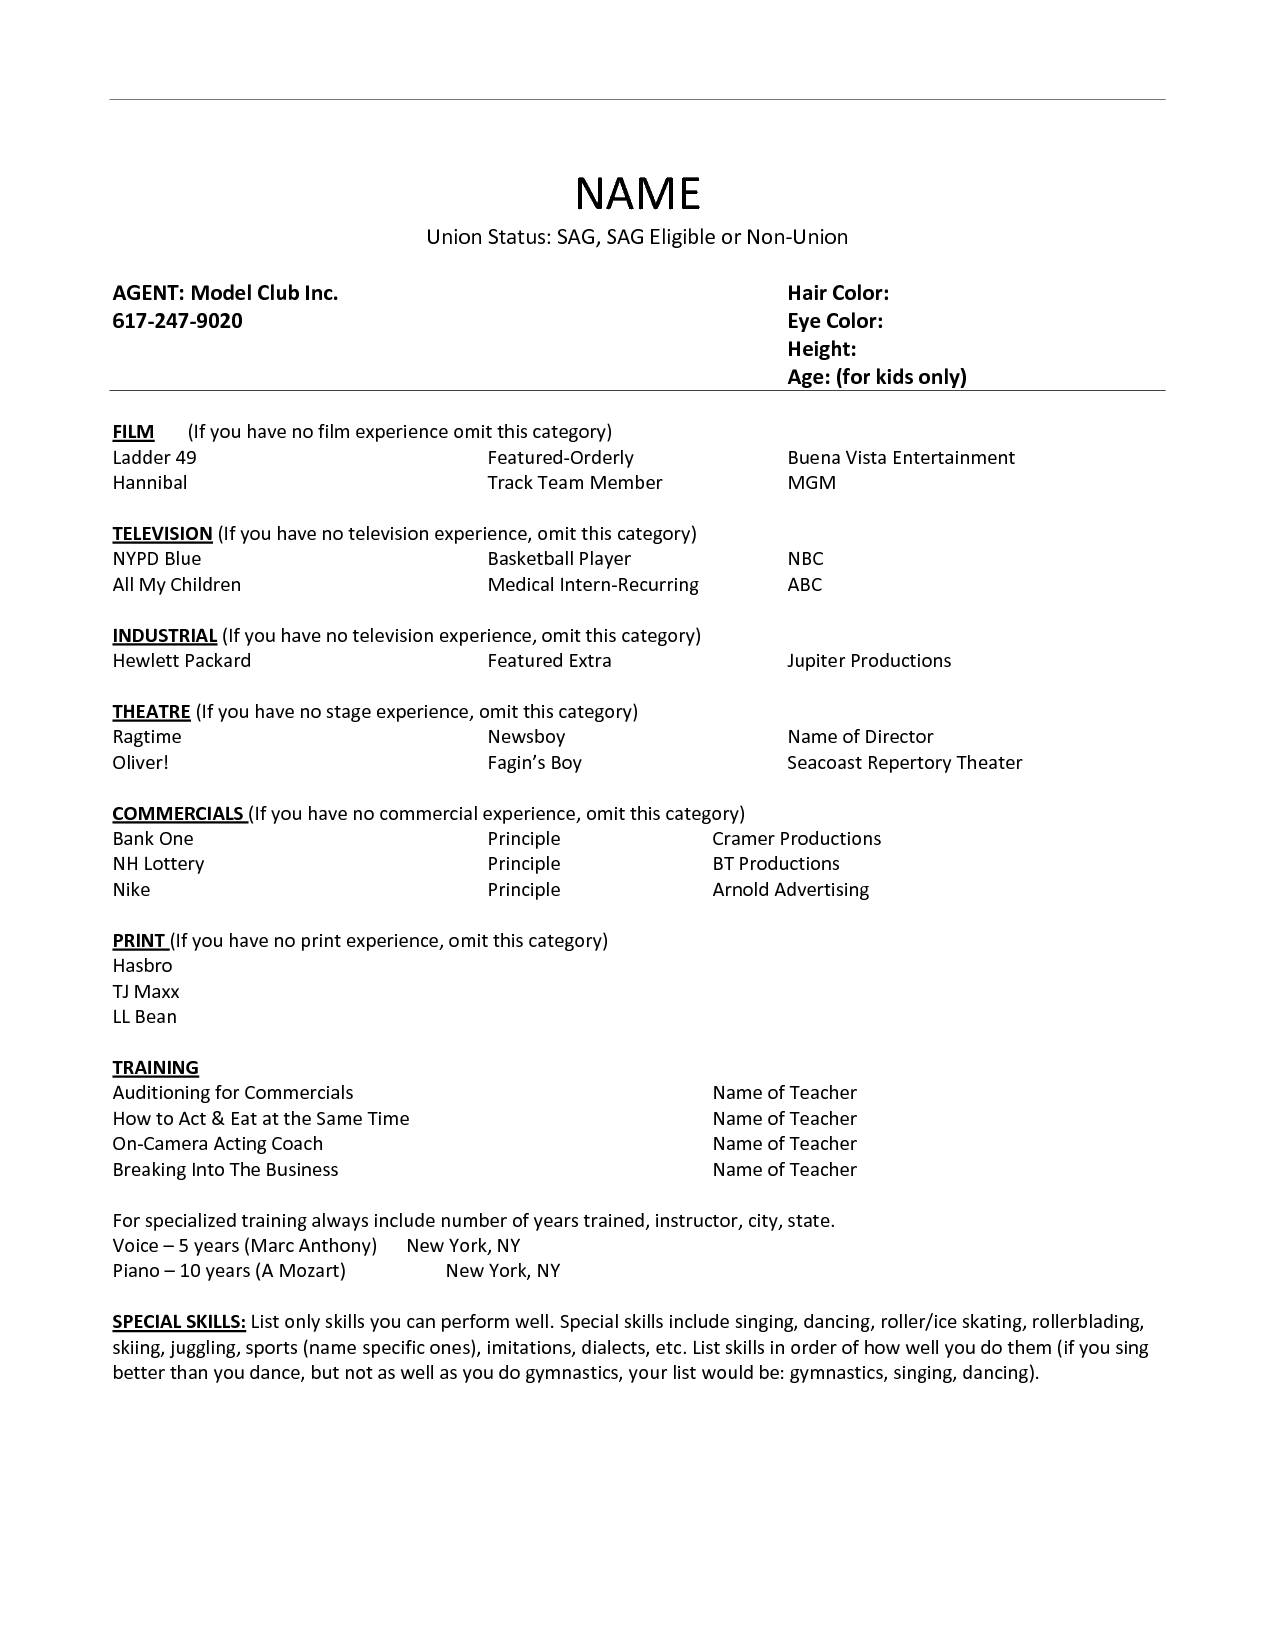 Dance Audition Resume Examples Name Union Status Sag Sag Eligible Or Non Union Agent Model Club Inc Acting Resume Template Acting Resume Resume No Experience